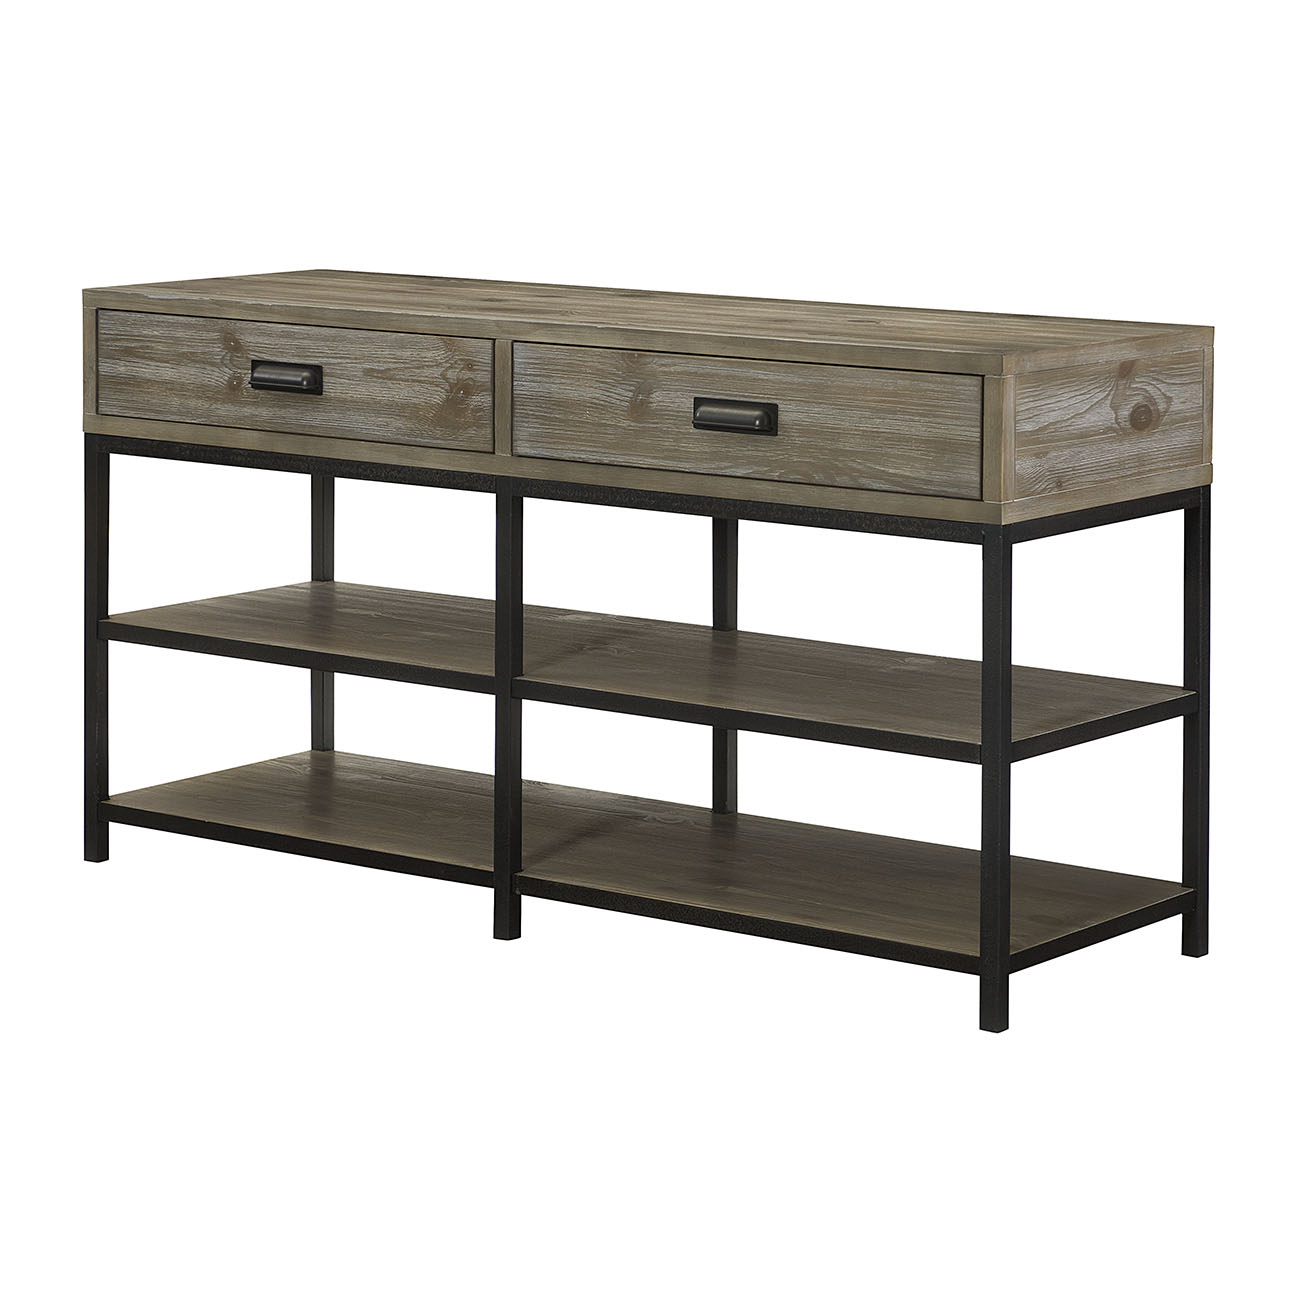 Parsons Entertainment Console by Hammary at Jordan's Home Furnishings